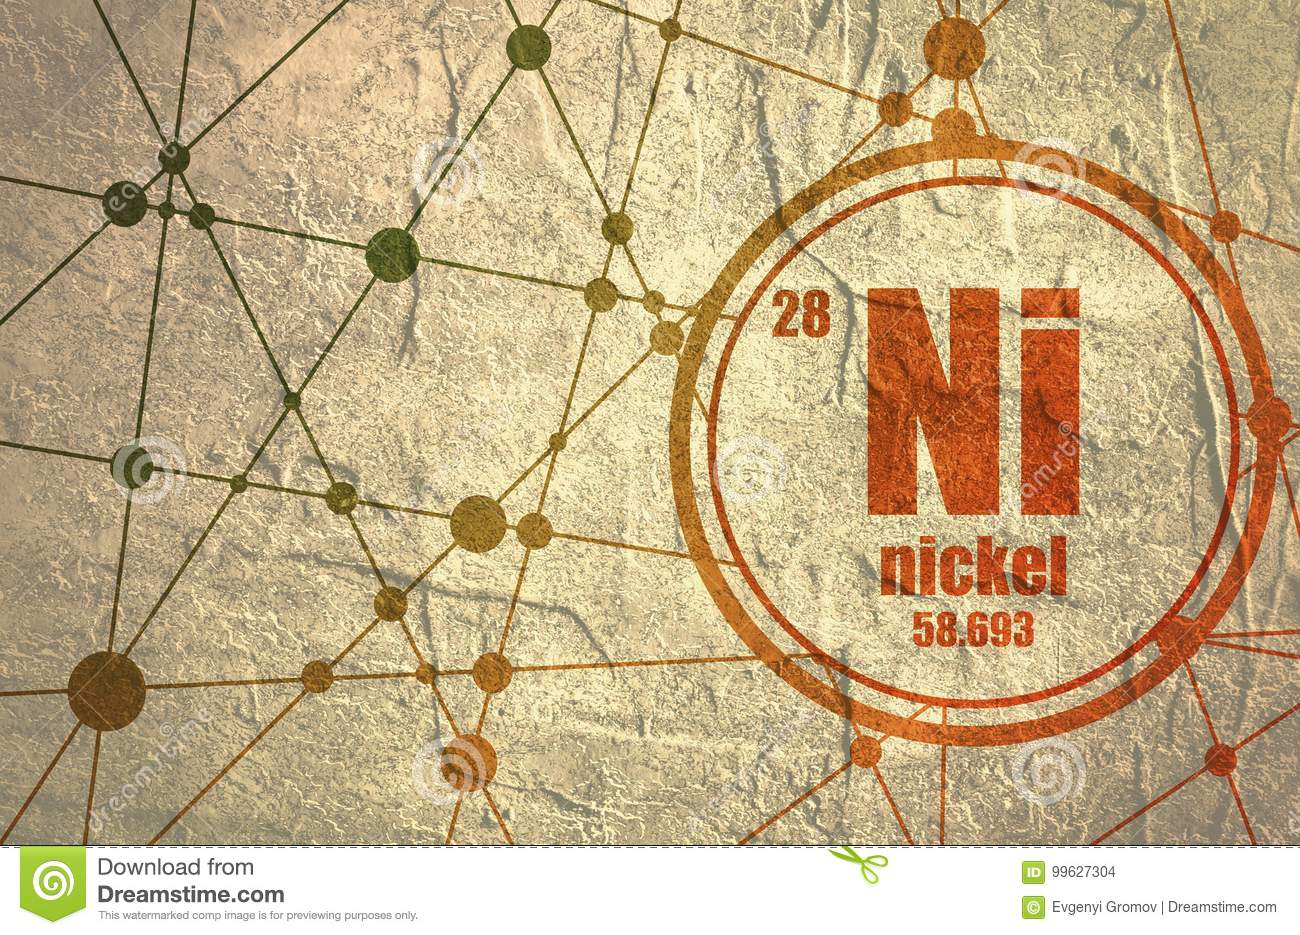 Nickel chemical element stock illustration illustration of name download comp urtaz Image collections